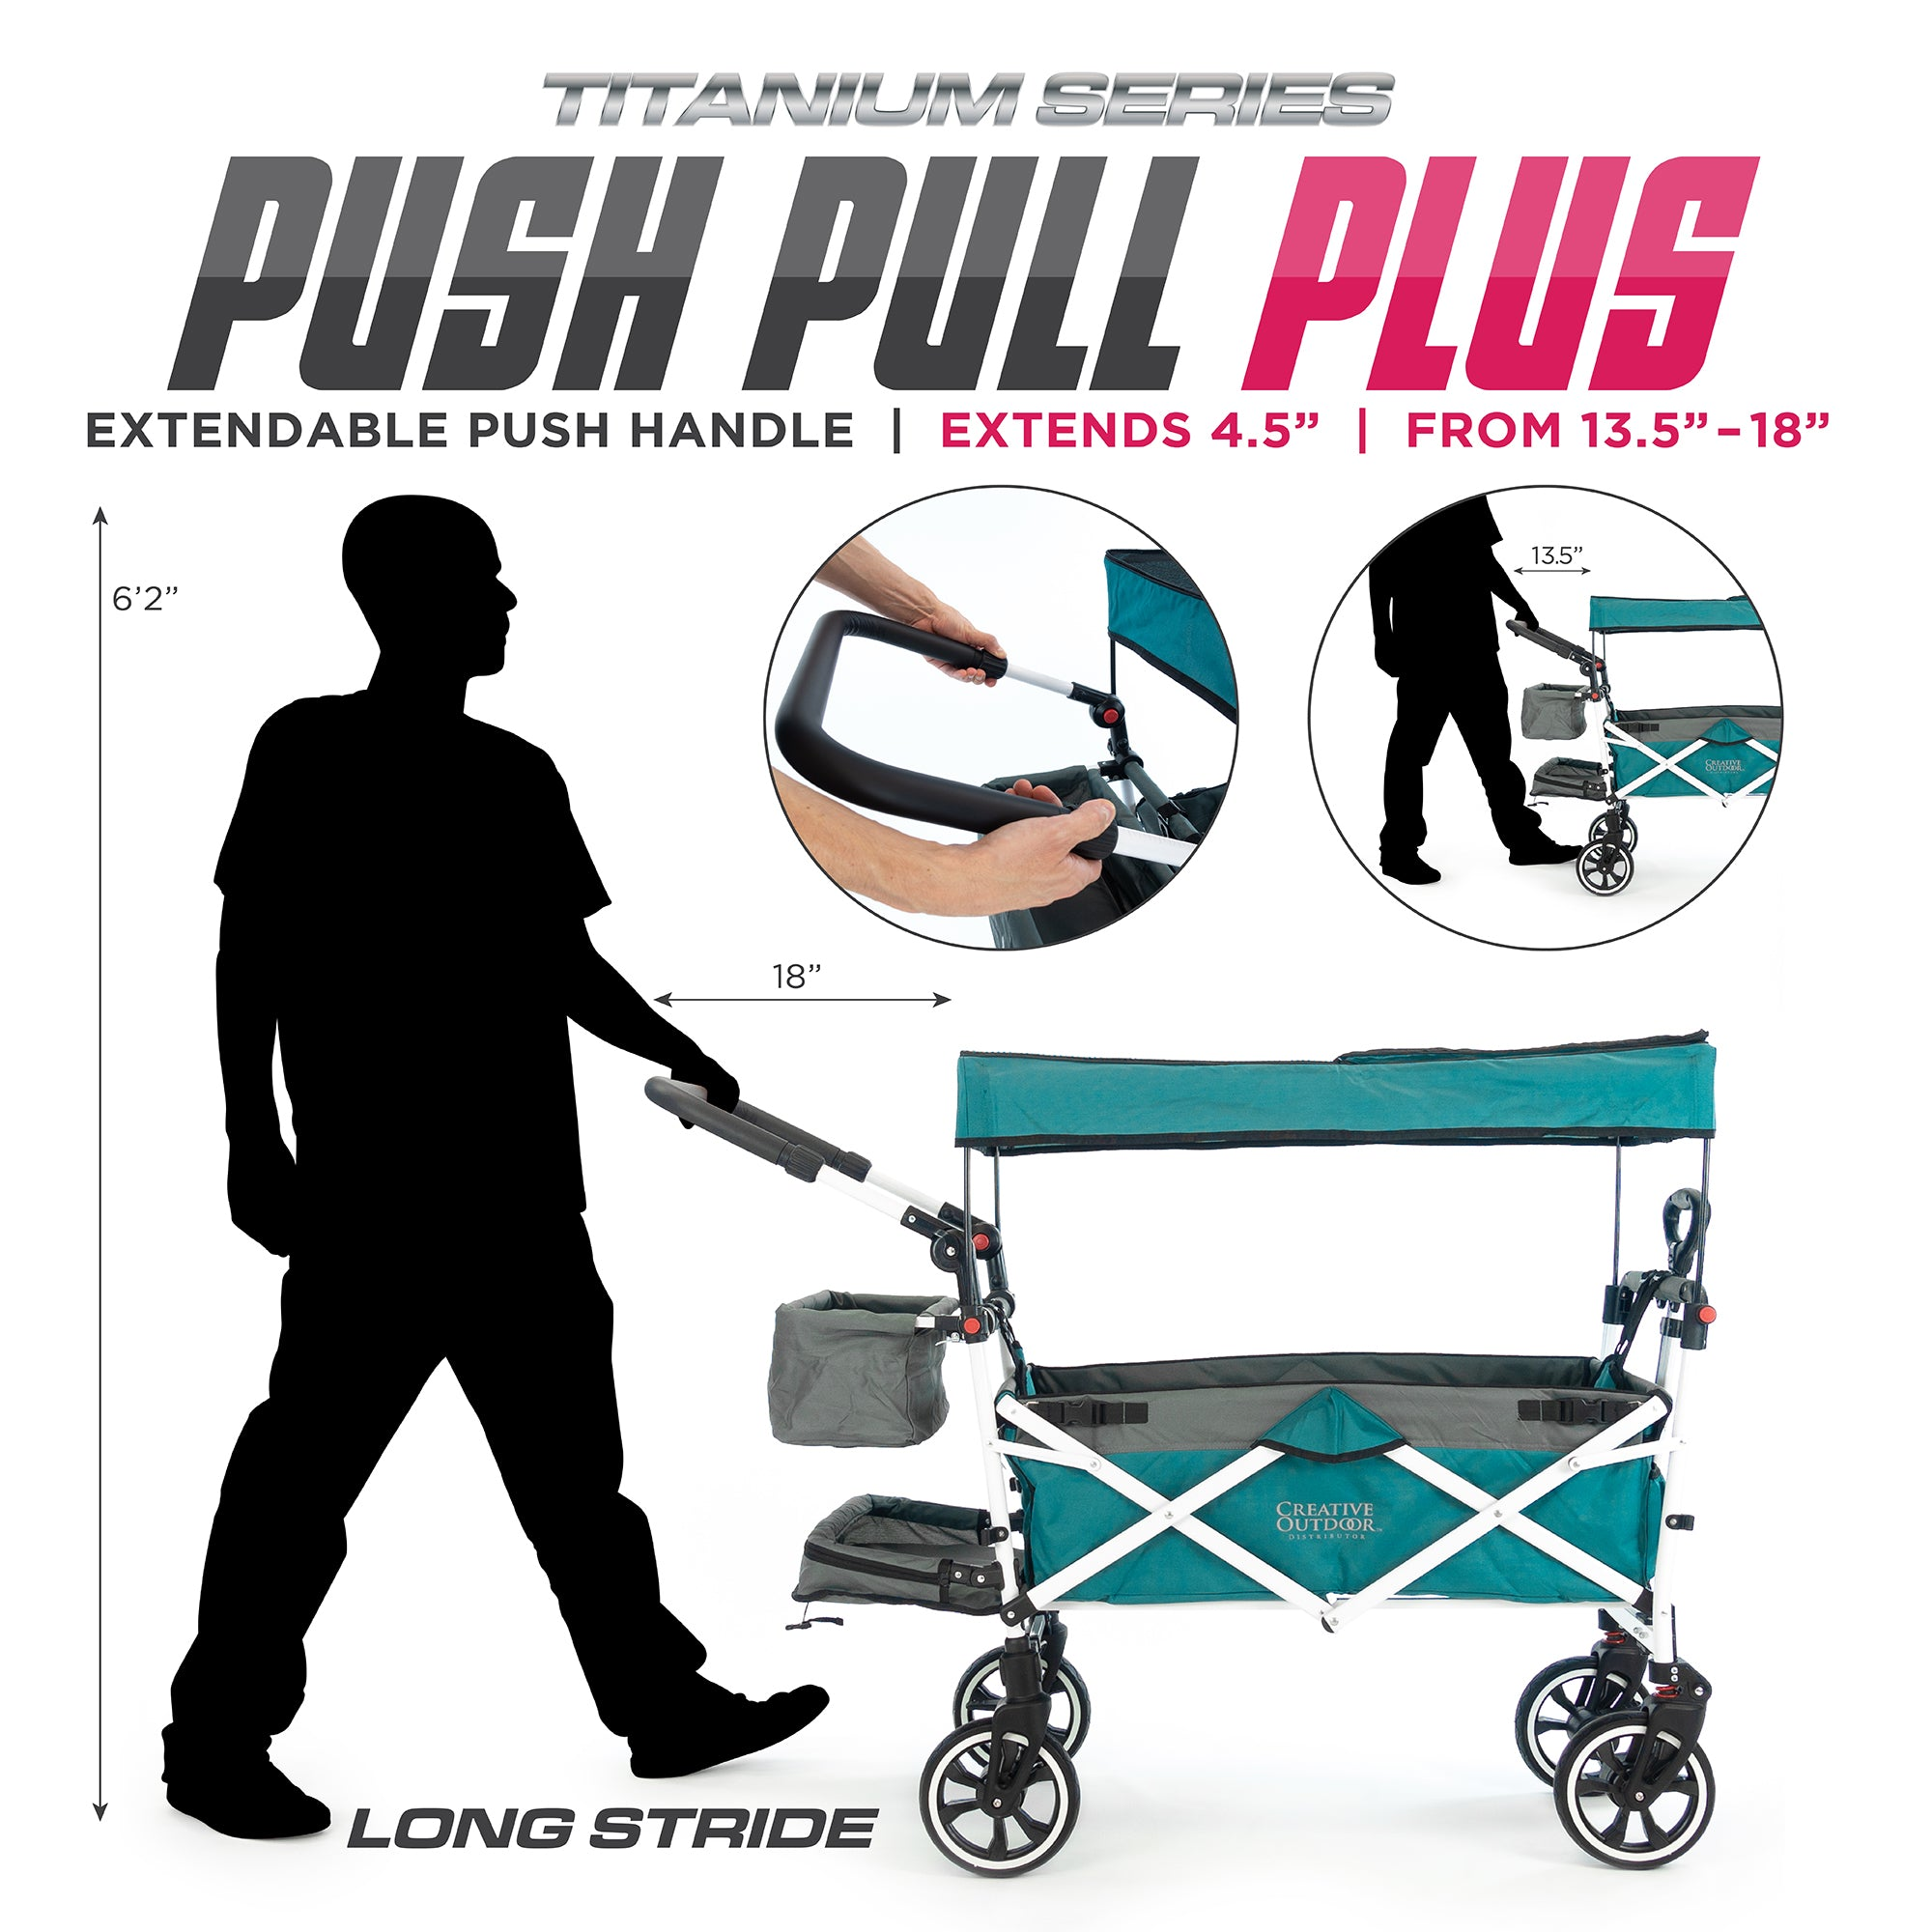 Push Pull Folding Stroller Wagon Titanium Series Teal PLUS Extendable Handle